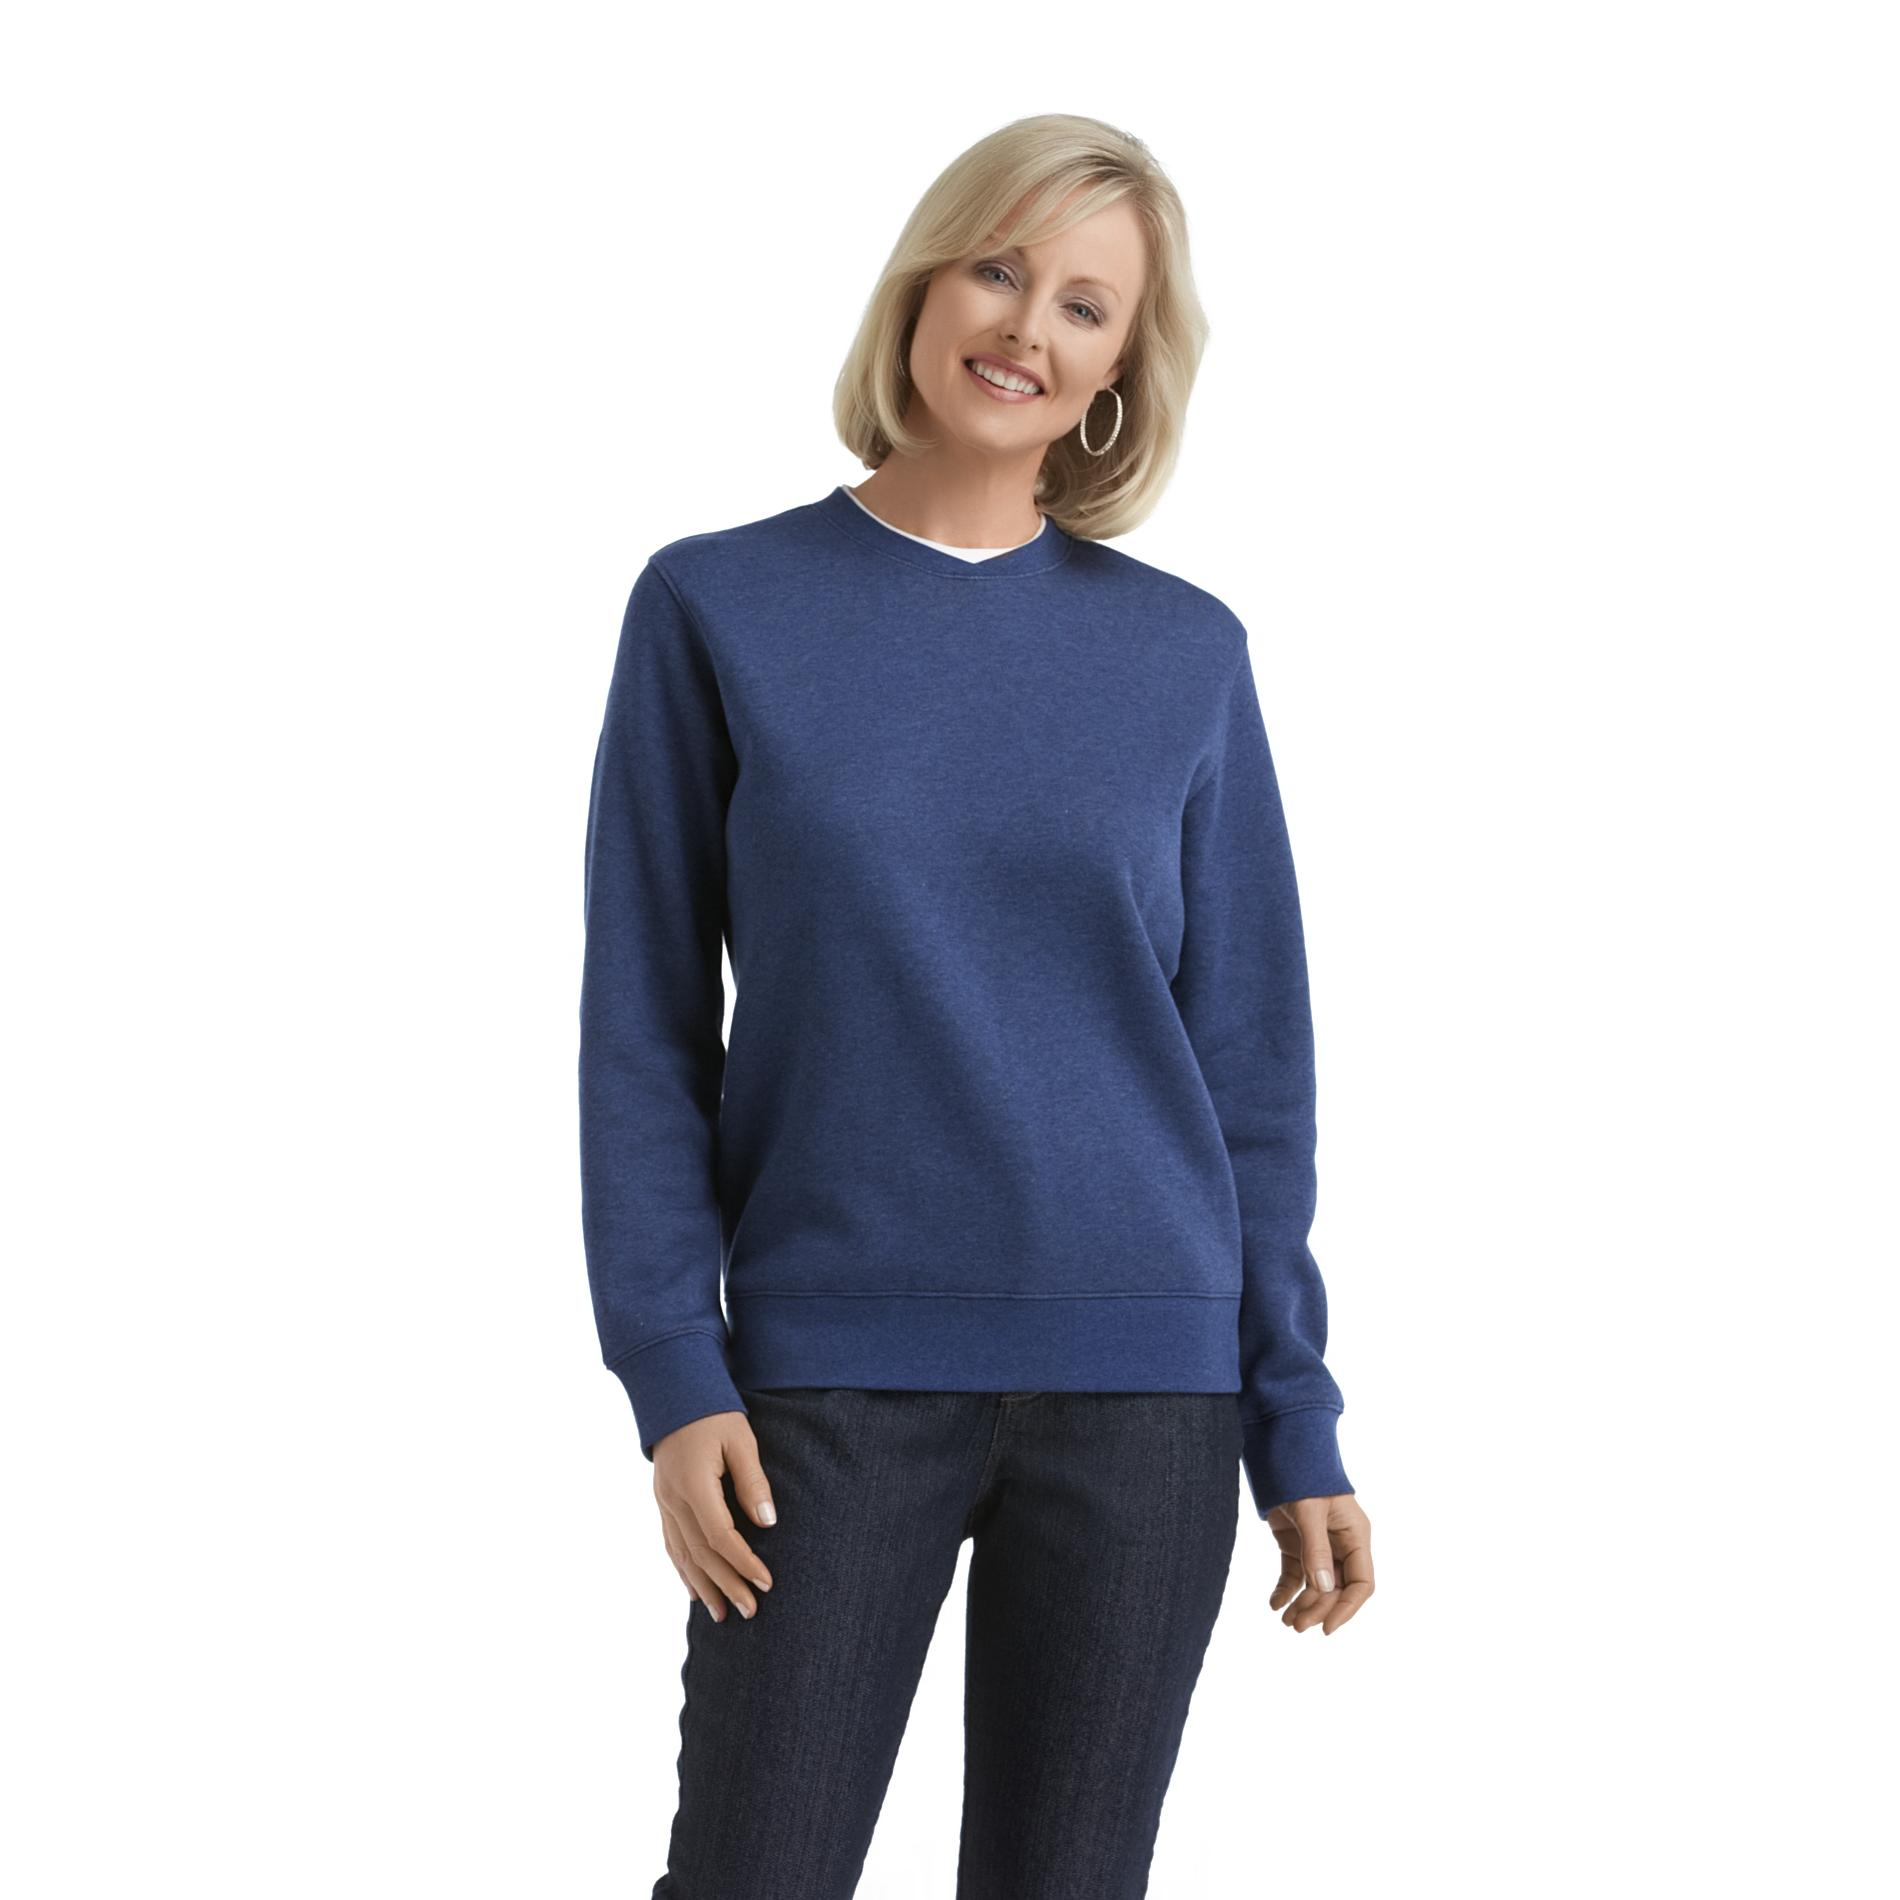 Laura Scott Women's Fleece Sweatshirt - Layered Look at Sears.com